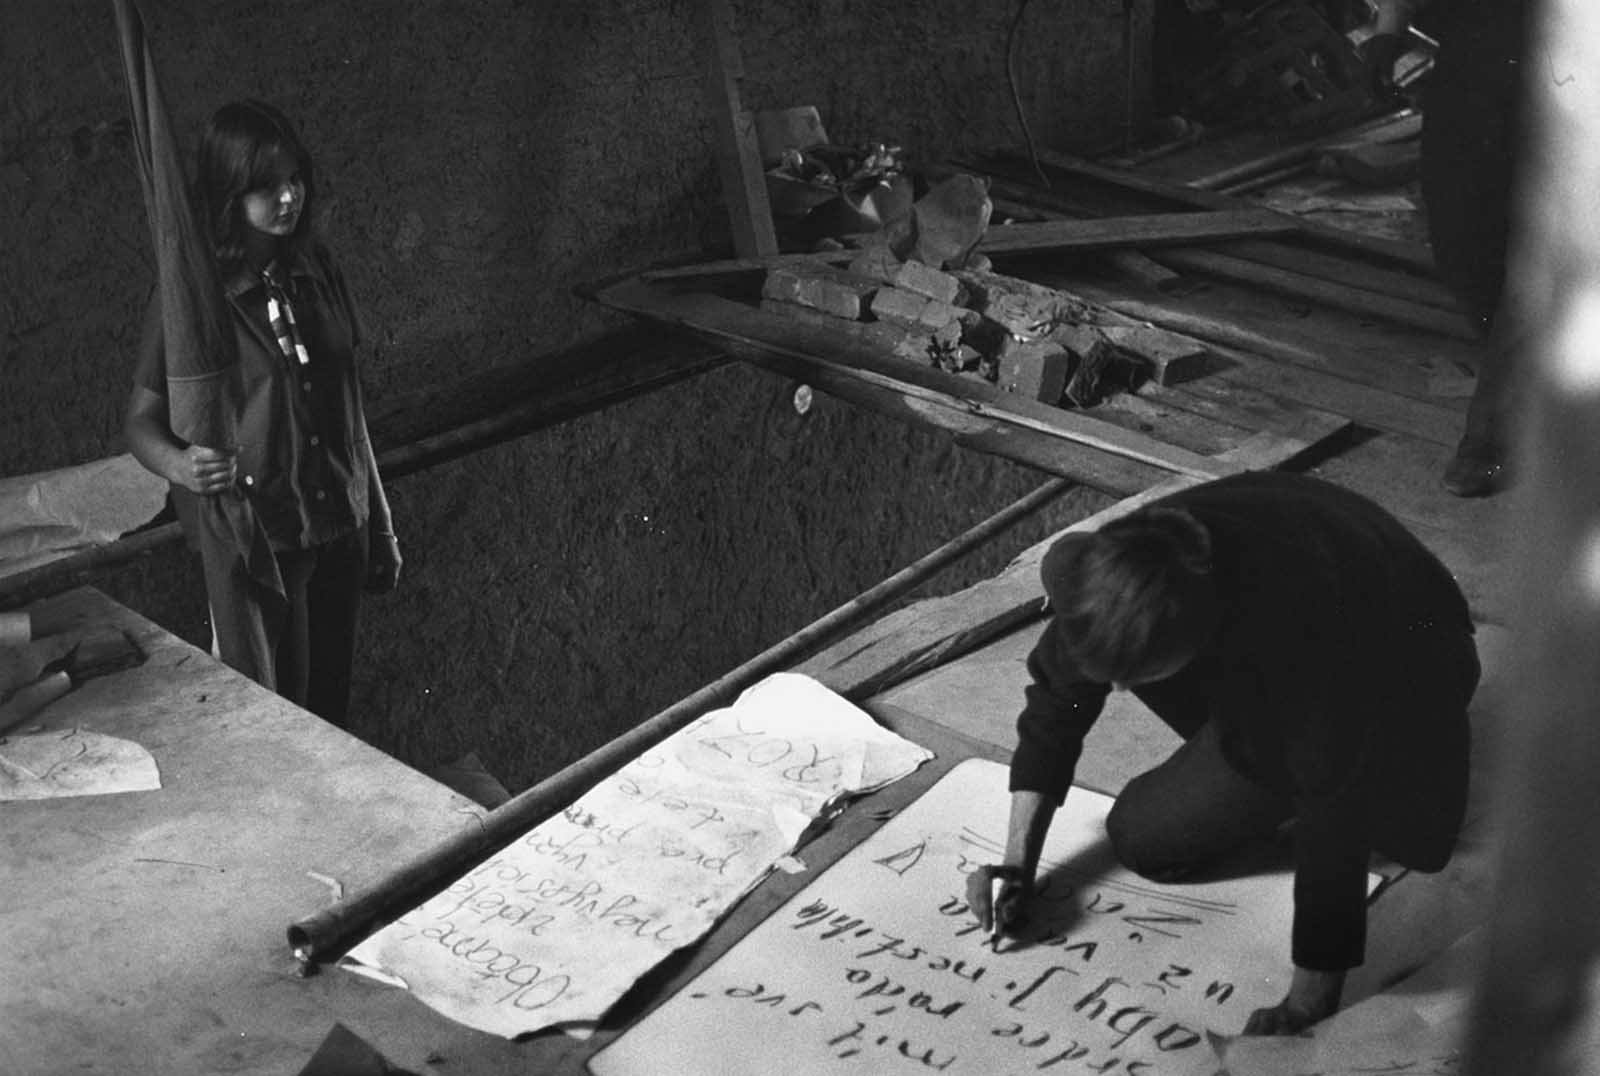 Students in the underground movement make anti-Russian posters on September 3, 1968, in Prague.